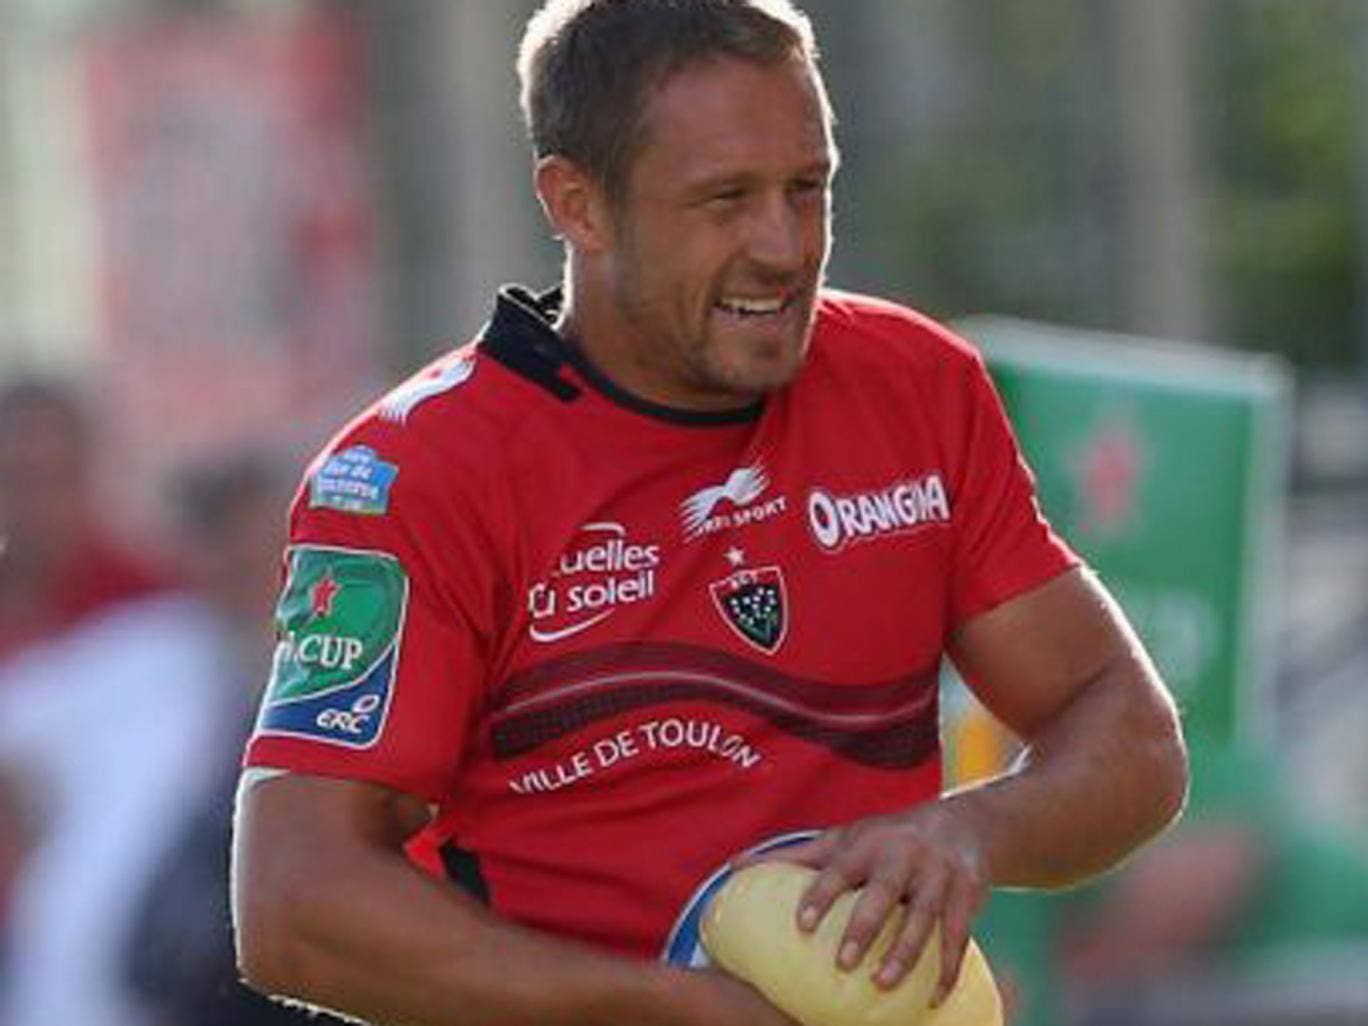 Toulon's Jonny Wilkinson was forced off with an injured hand